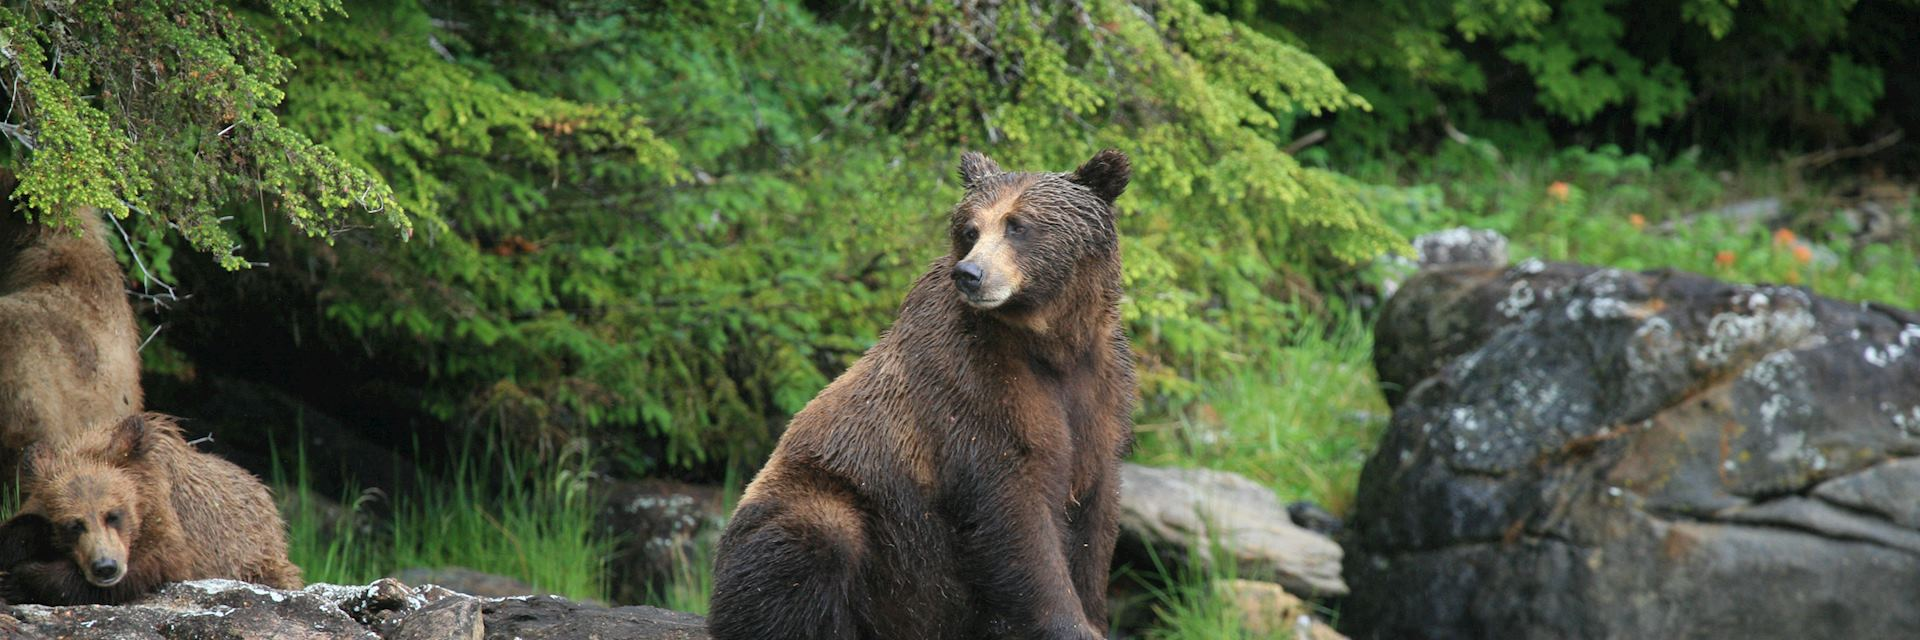 Grizzly bear, Prince Rupert